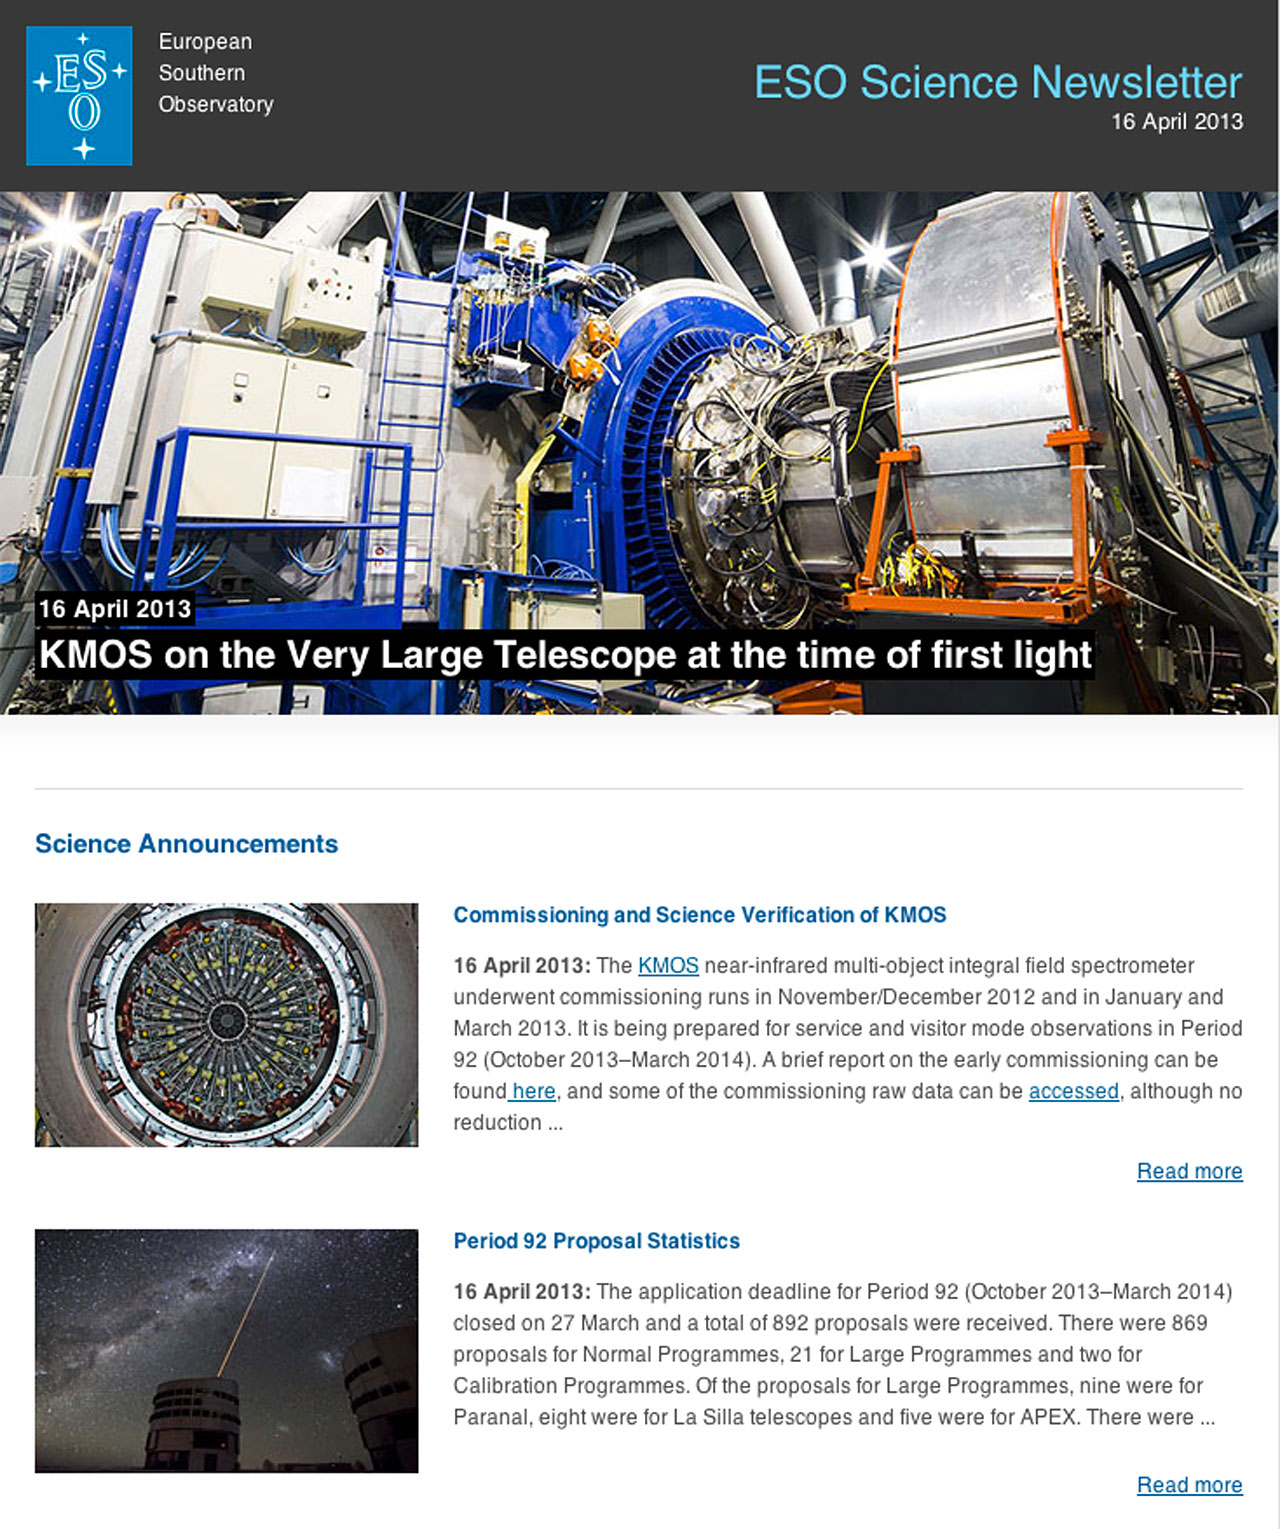 ESO Science Newsletter, April 2013